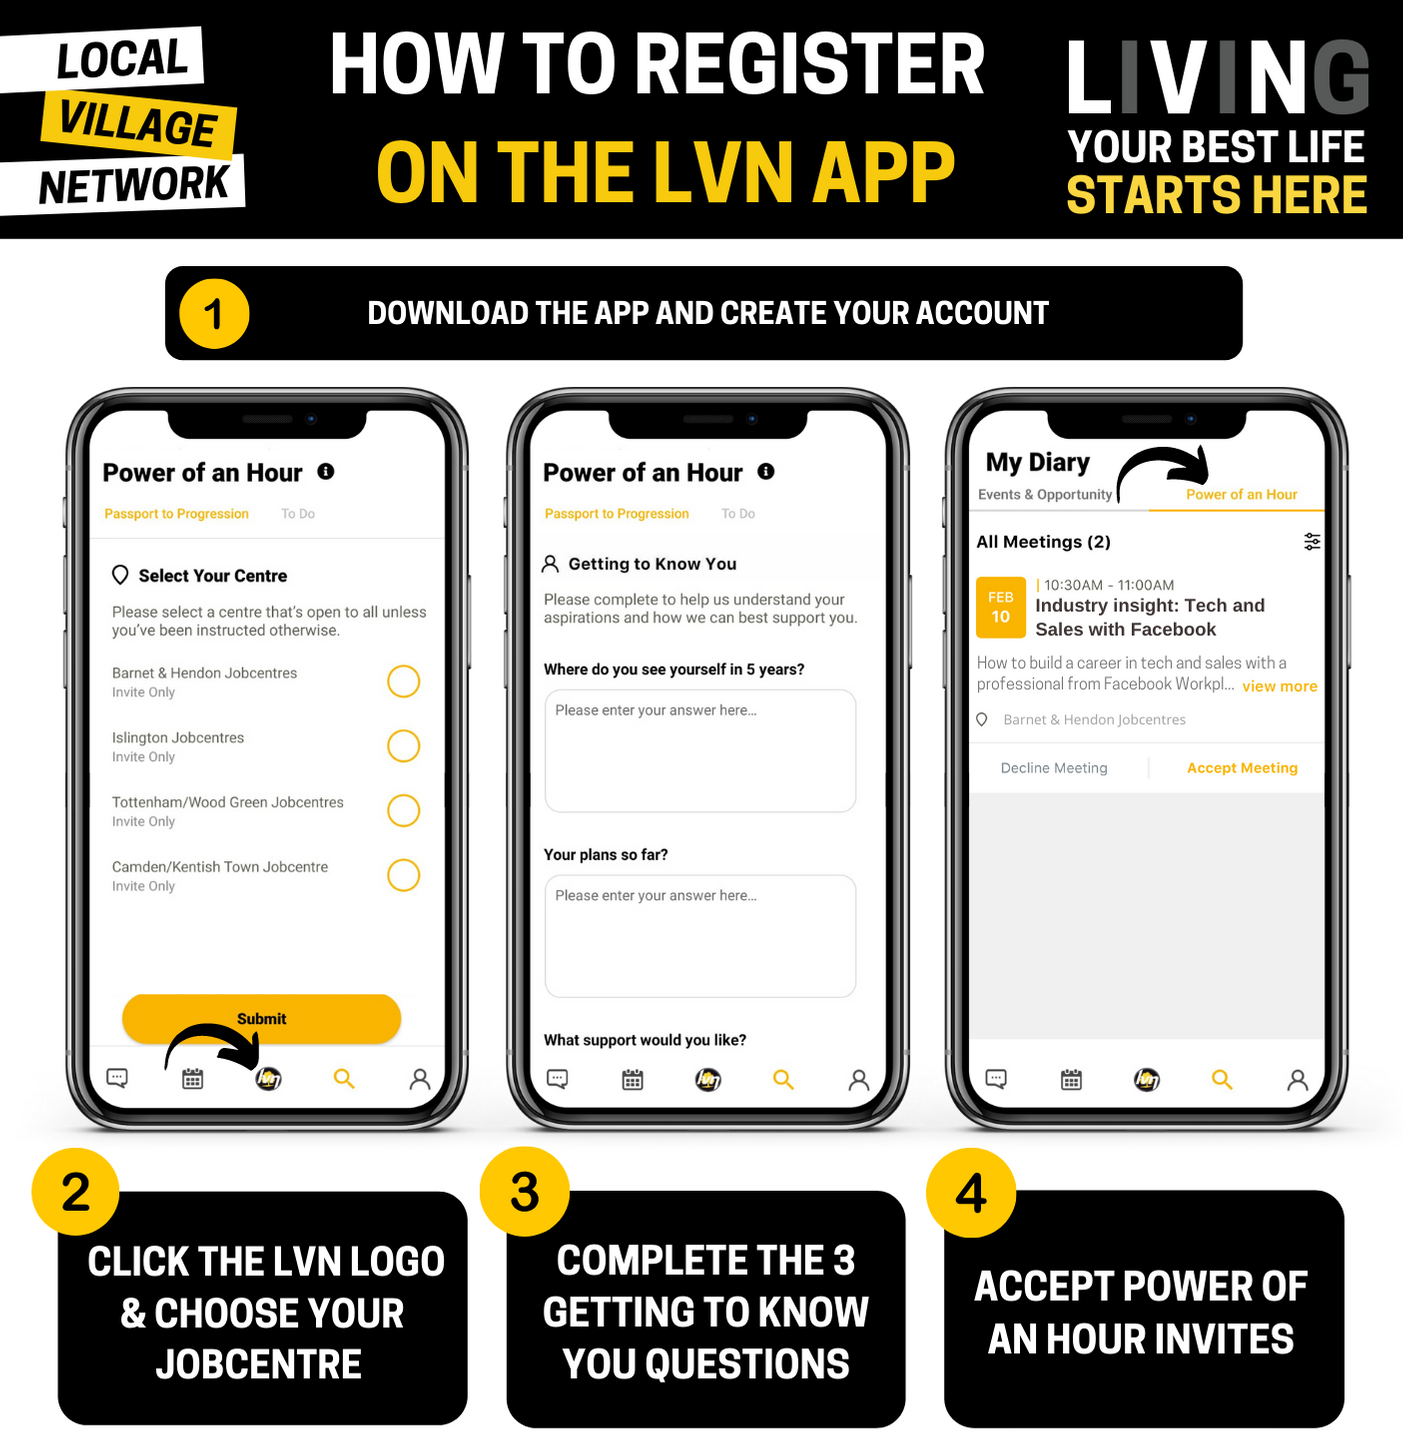 How to register on the LVN app